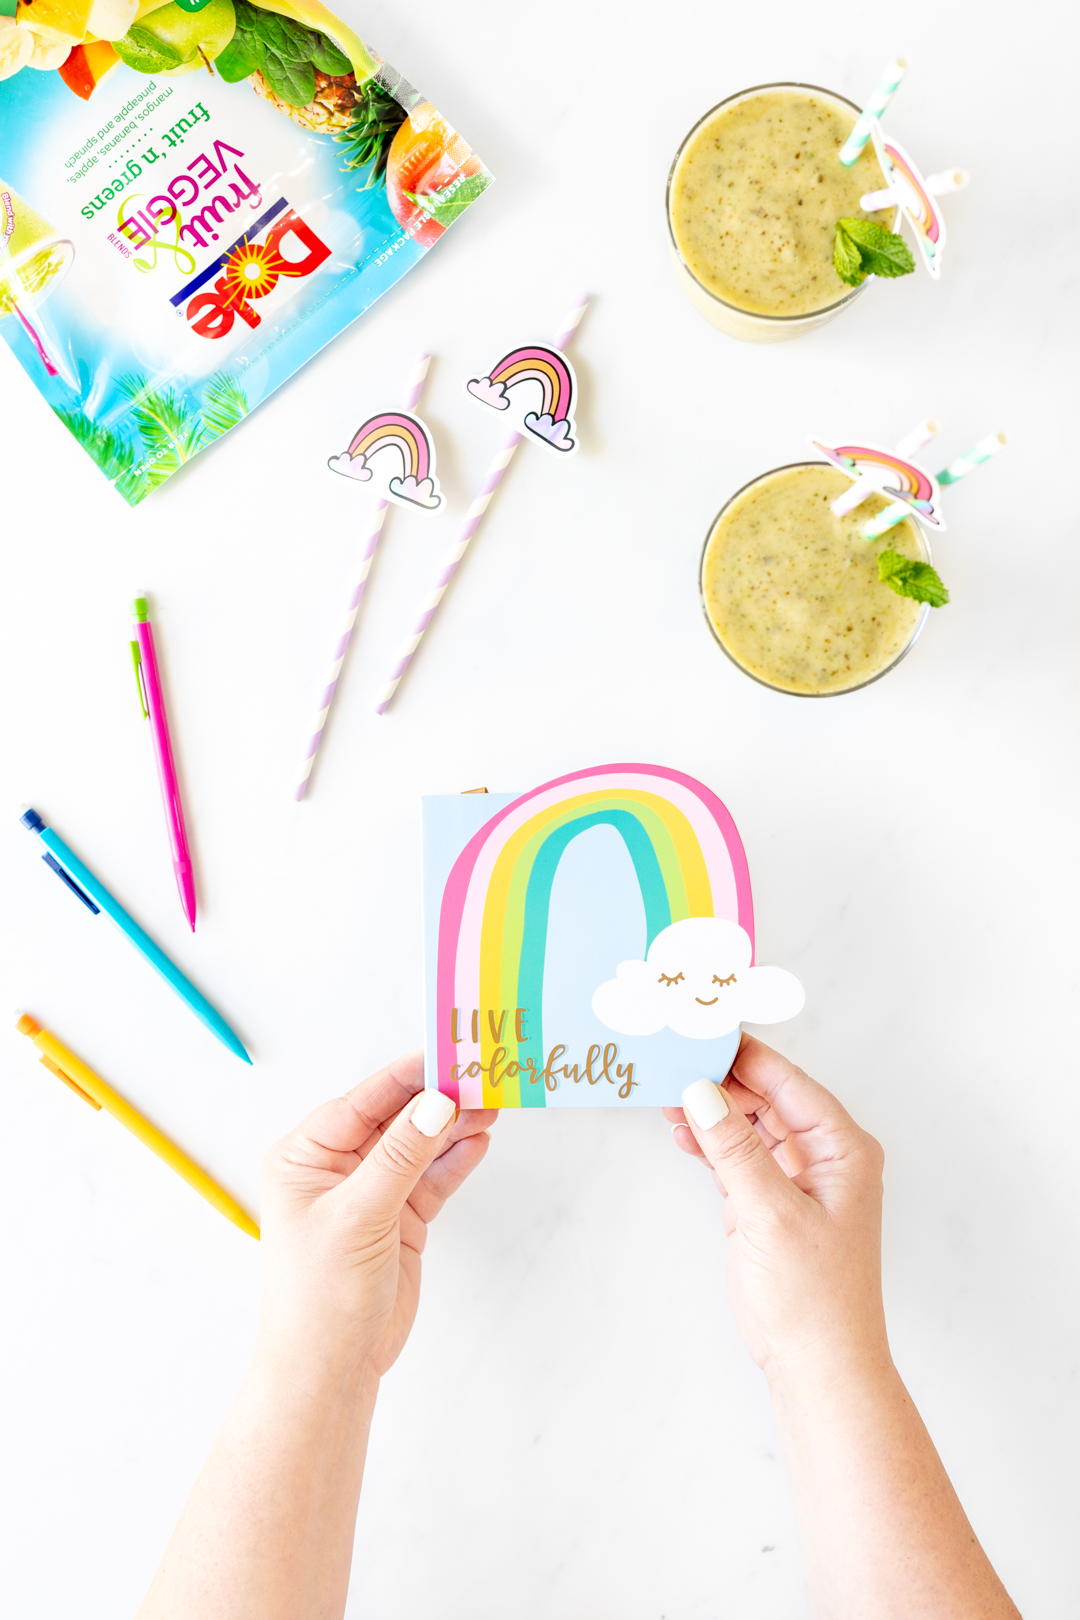 Live colorfully notepad with rainbow